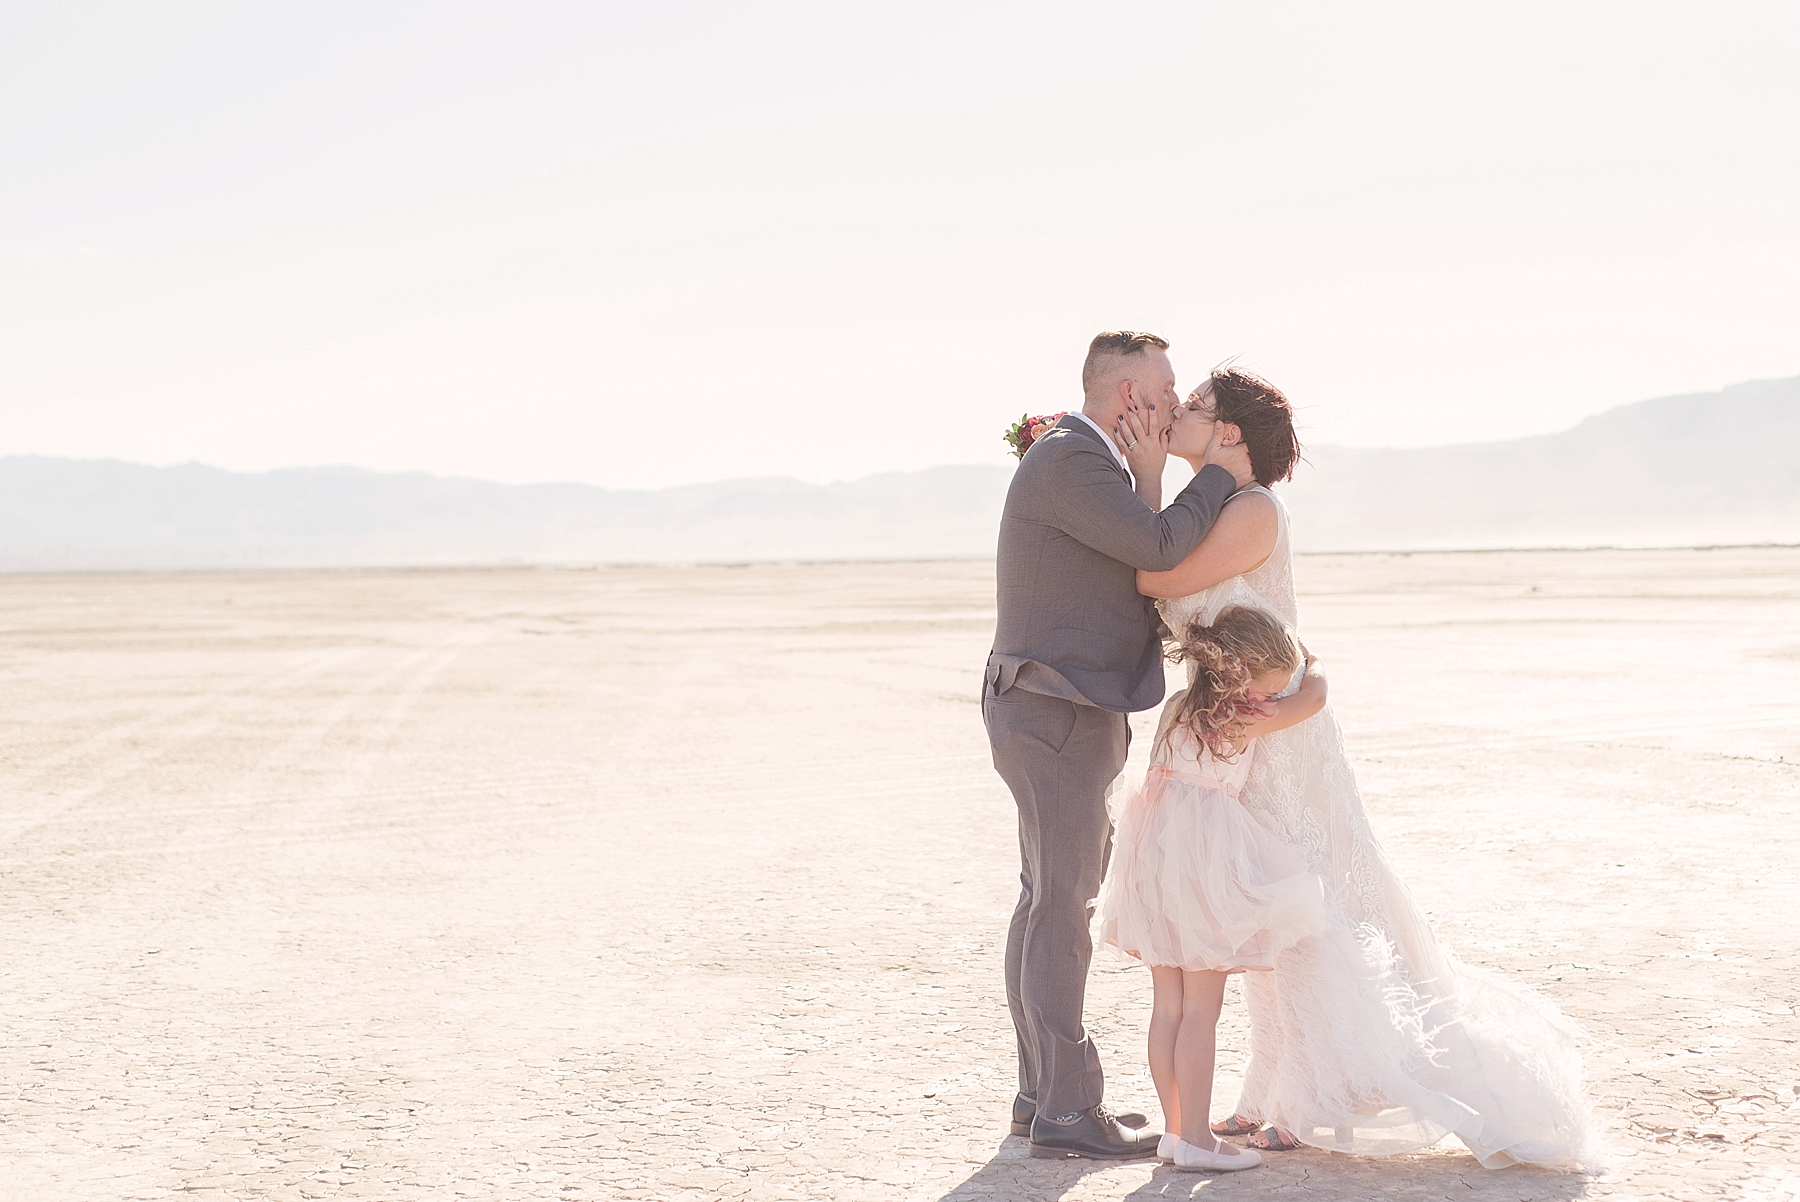 las-vegas-dry-lake-bed-elopement-flora-pop-07.jpg